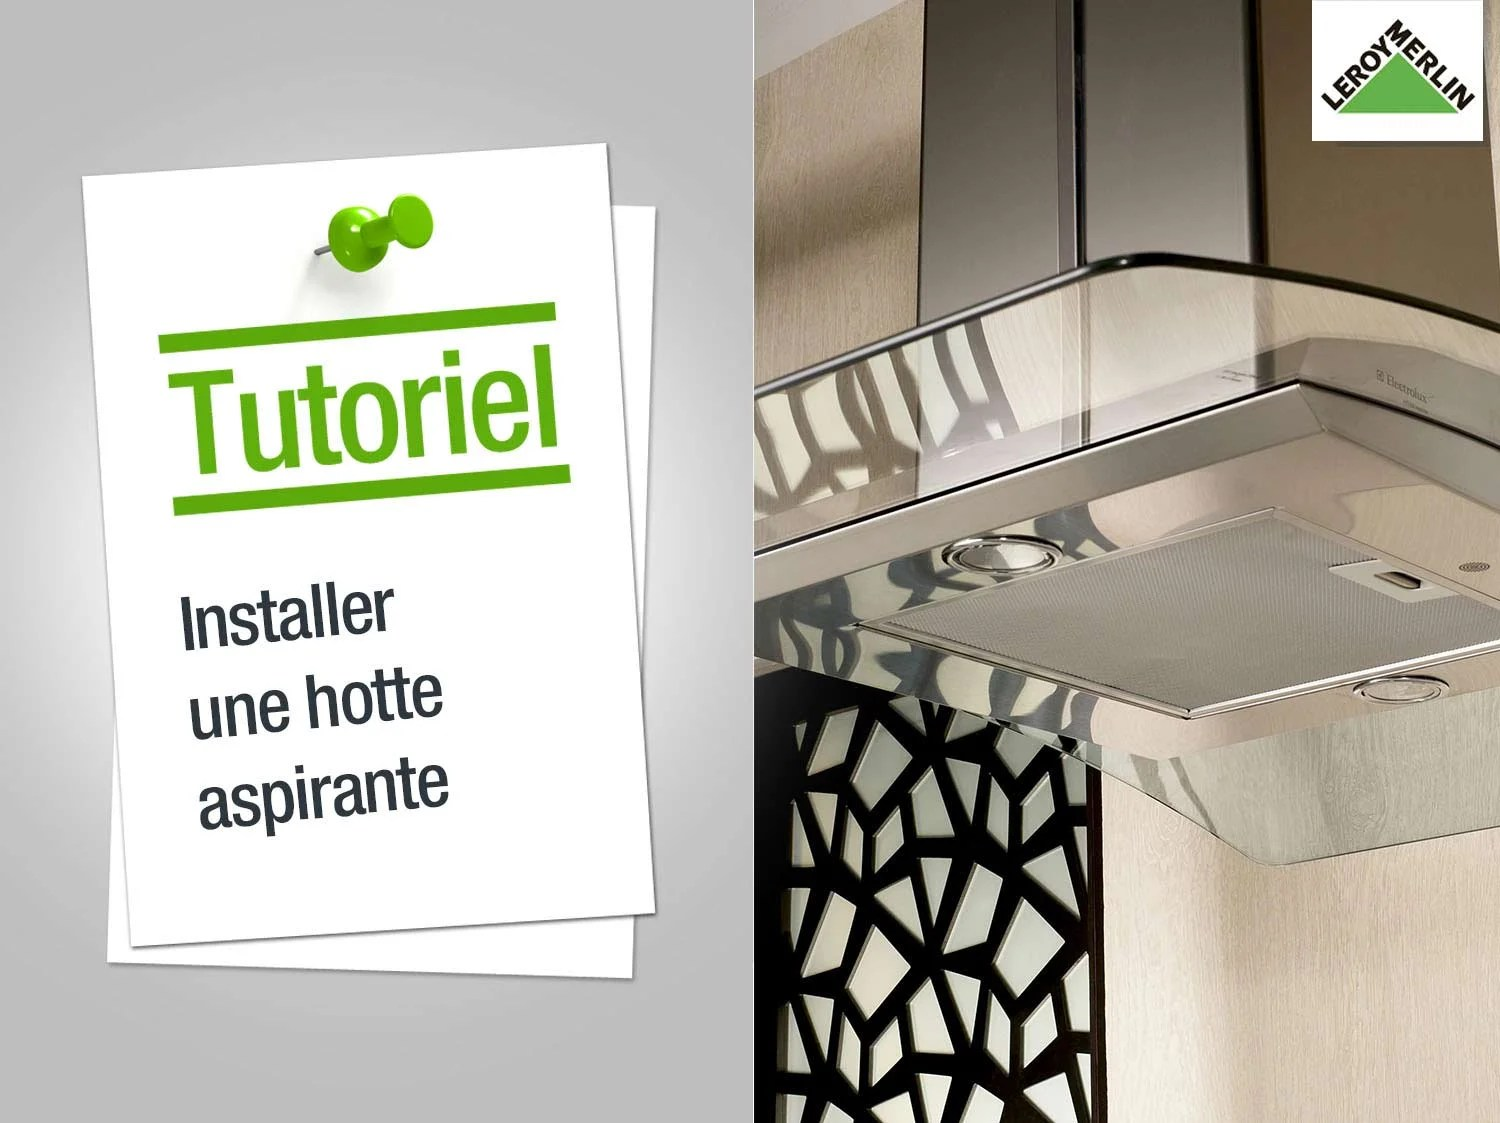 Cache Plaque De Cuisson Leroy Merlin Comment Installer Une Hotte Aspirante Leroy Merlin